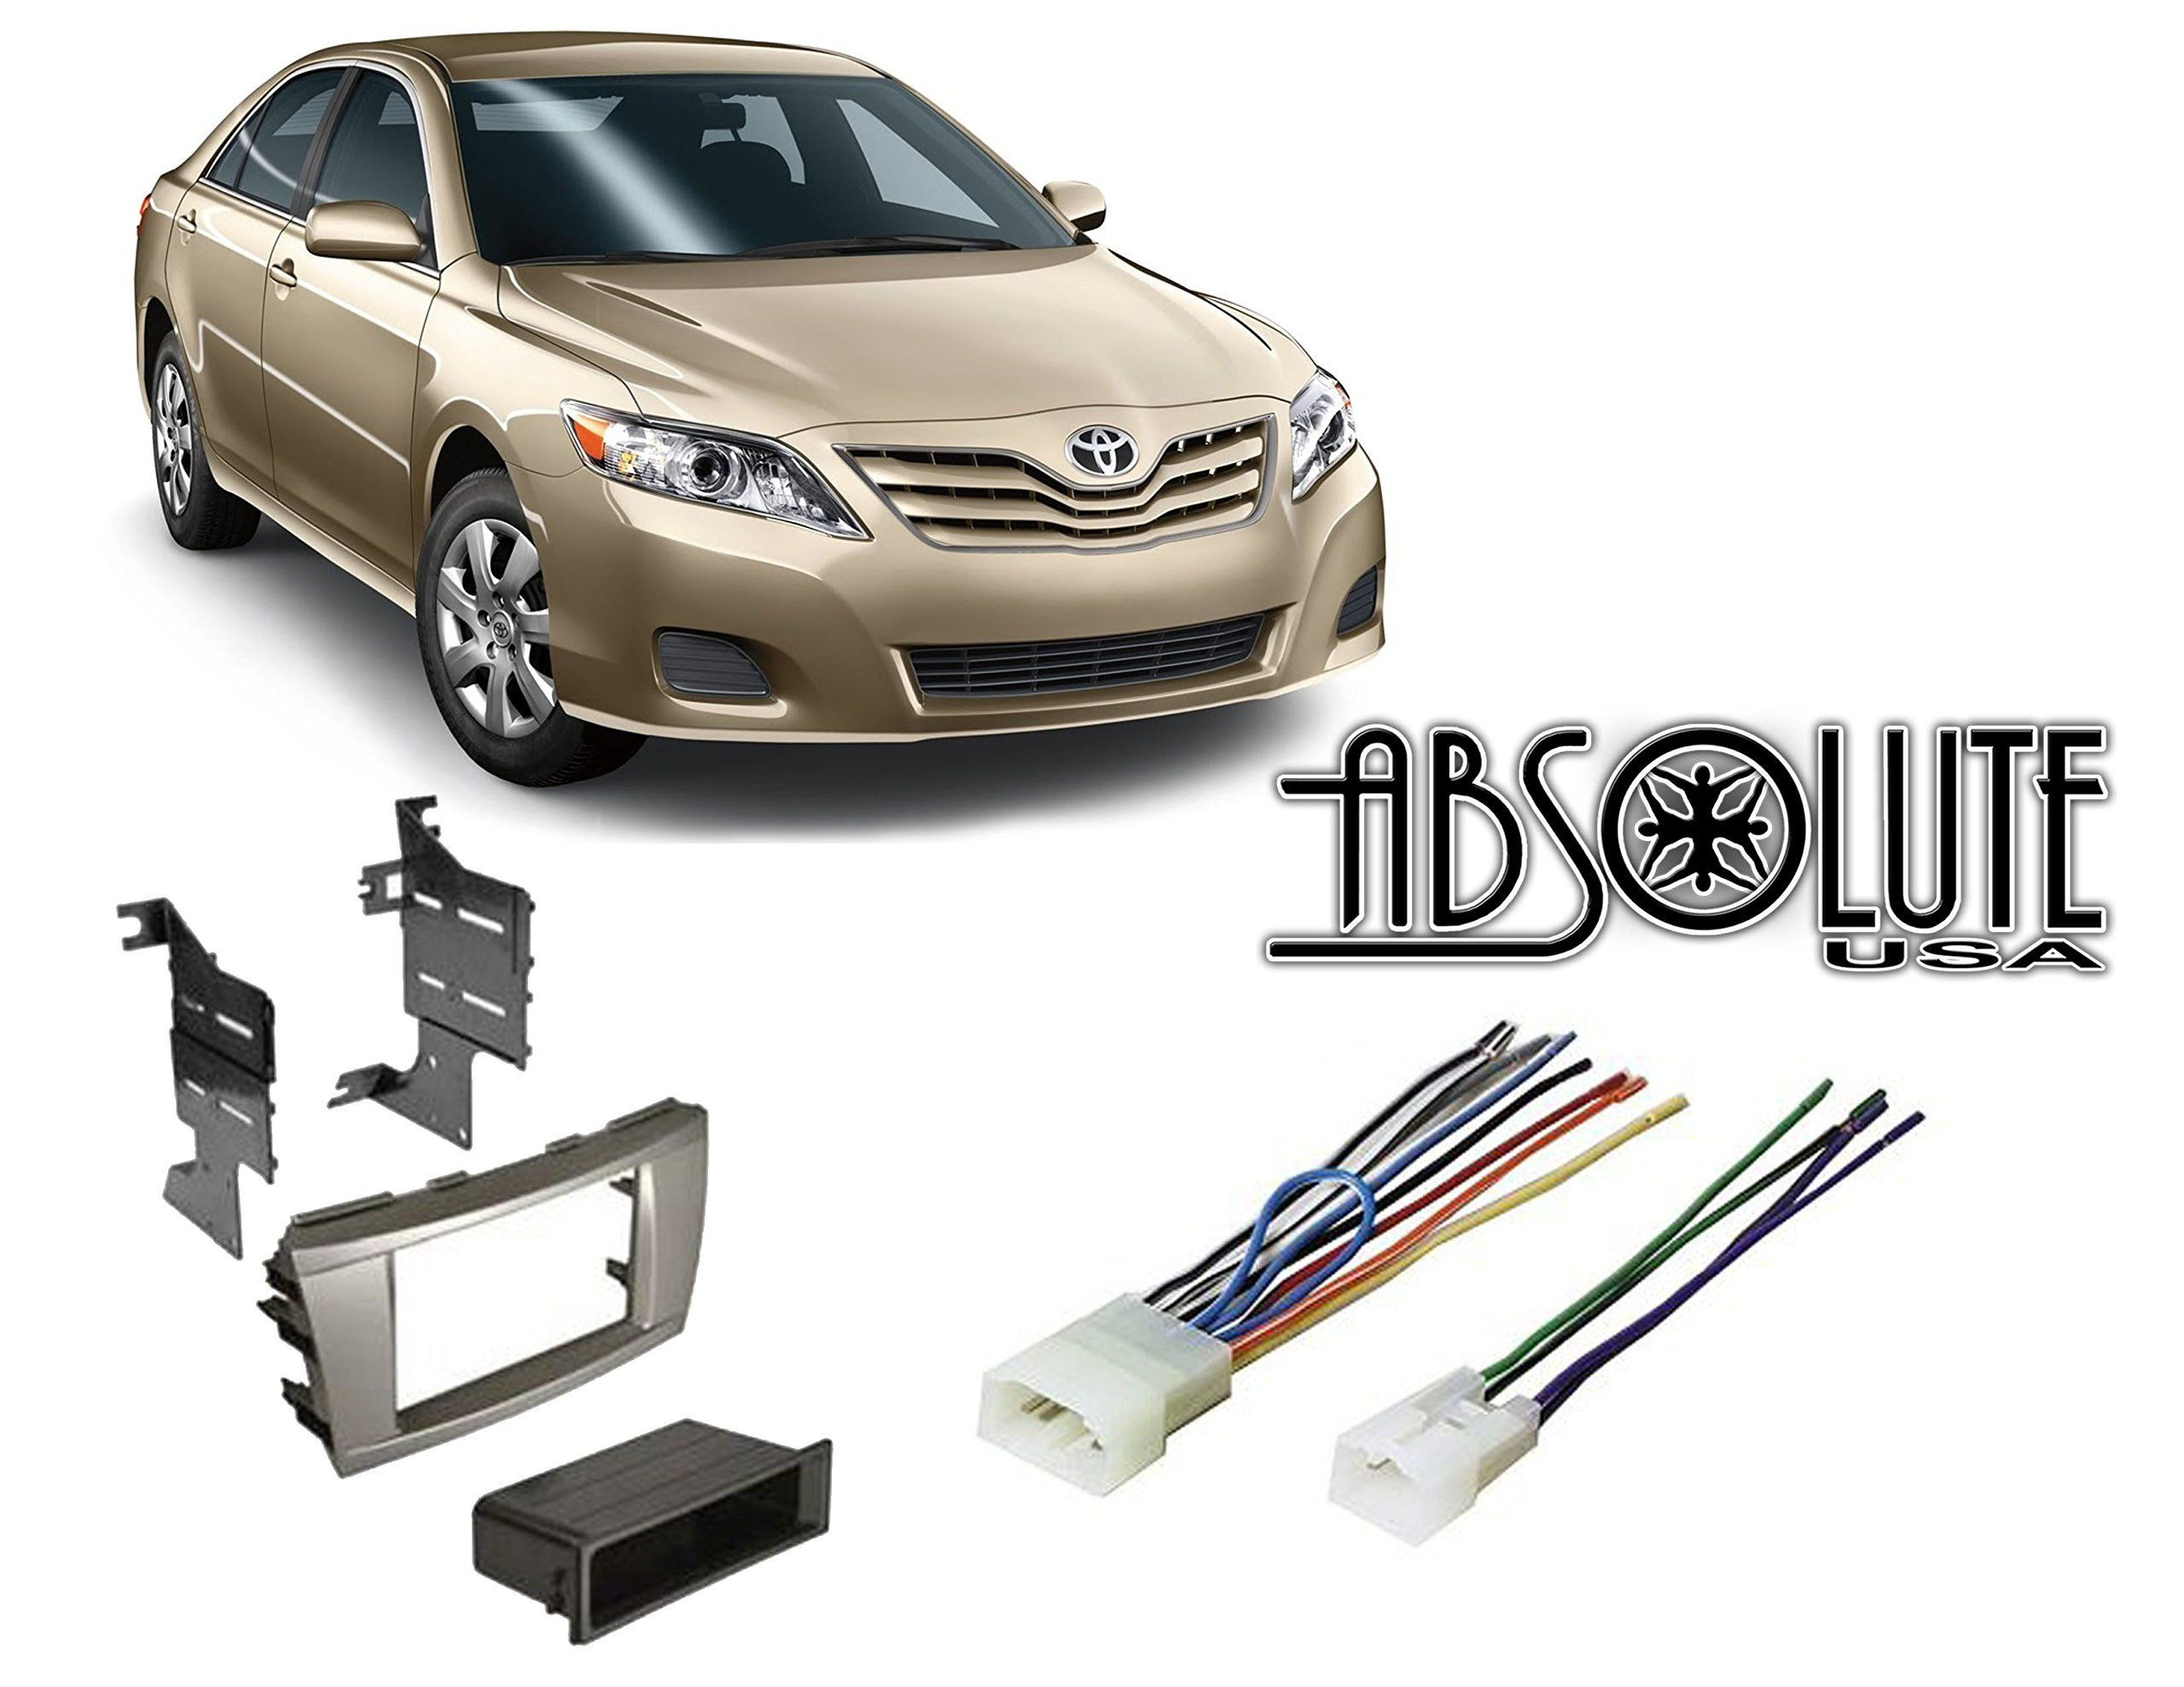 Absolute Radiokitpkg9 Fits Toyota Camry 2007 2011 Double Din Stereo Harness Radio Install Dash Kit Toyota Camry Camry Camry 2007